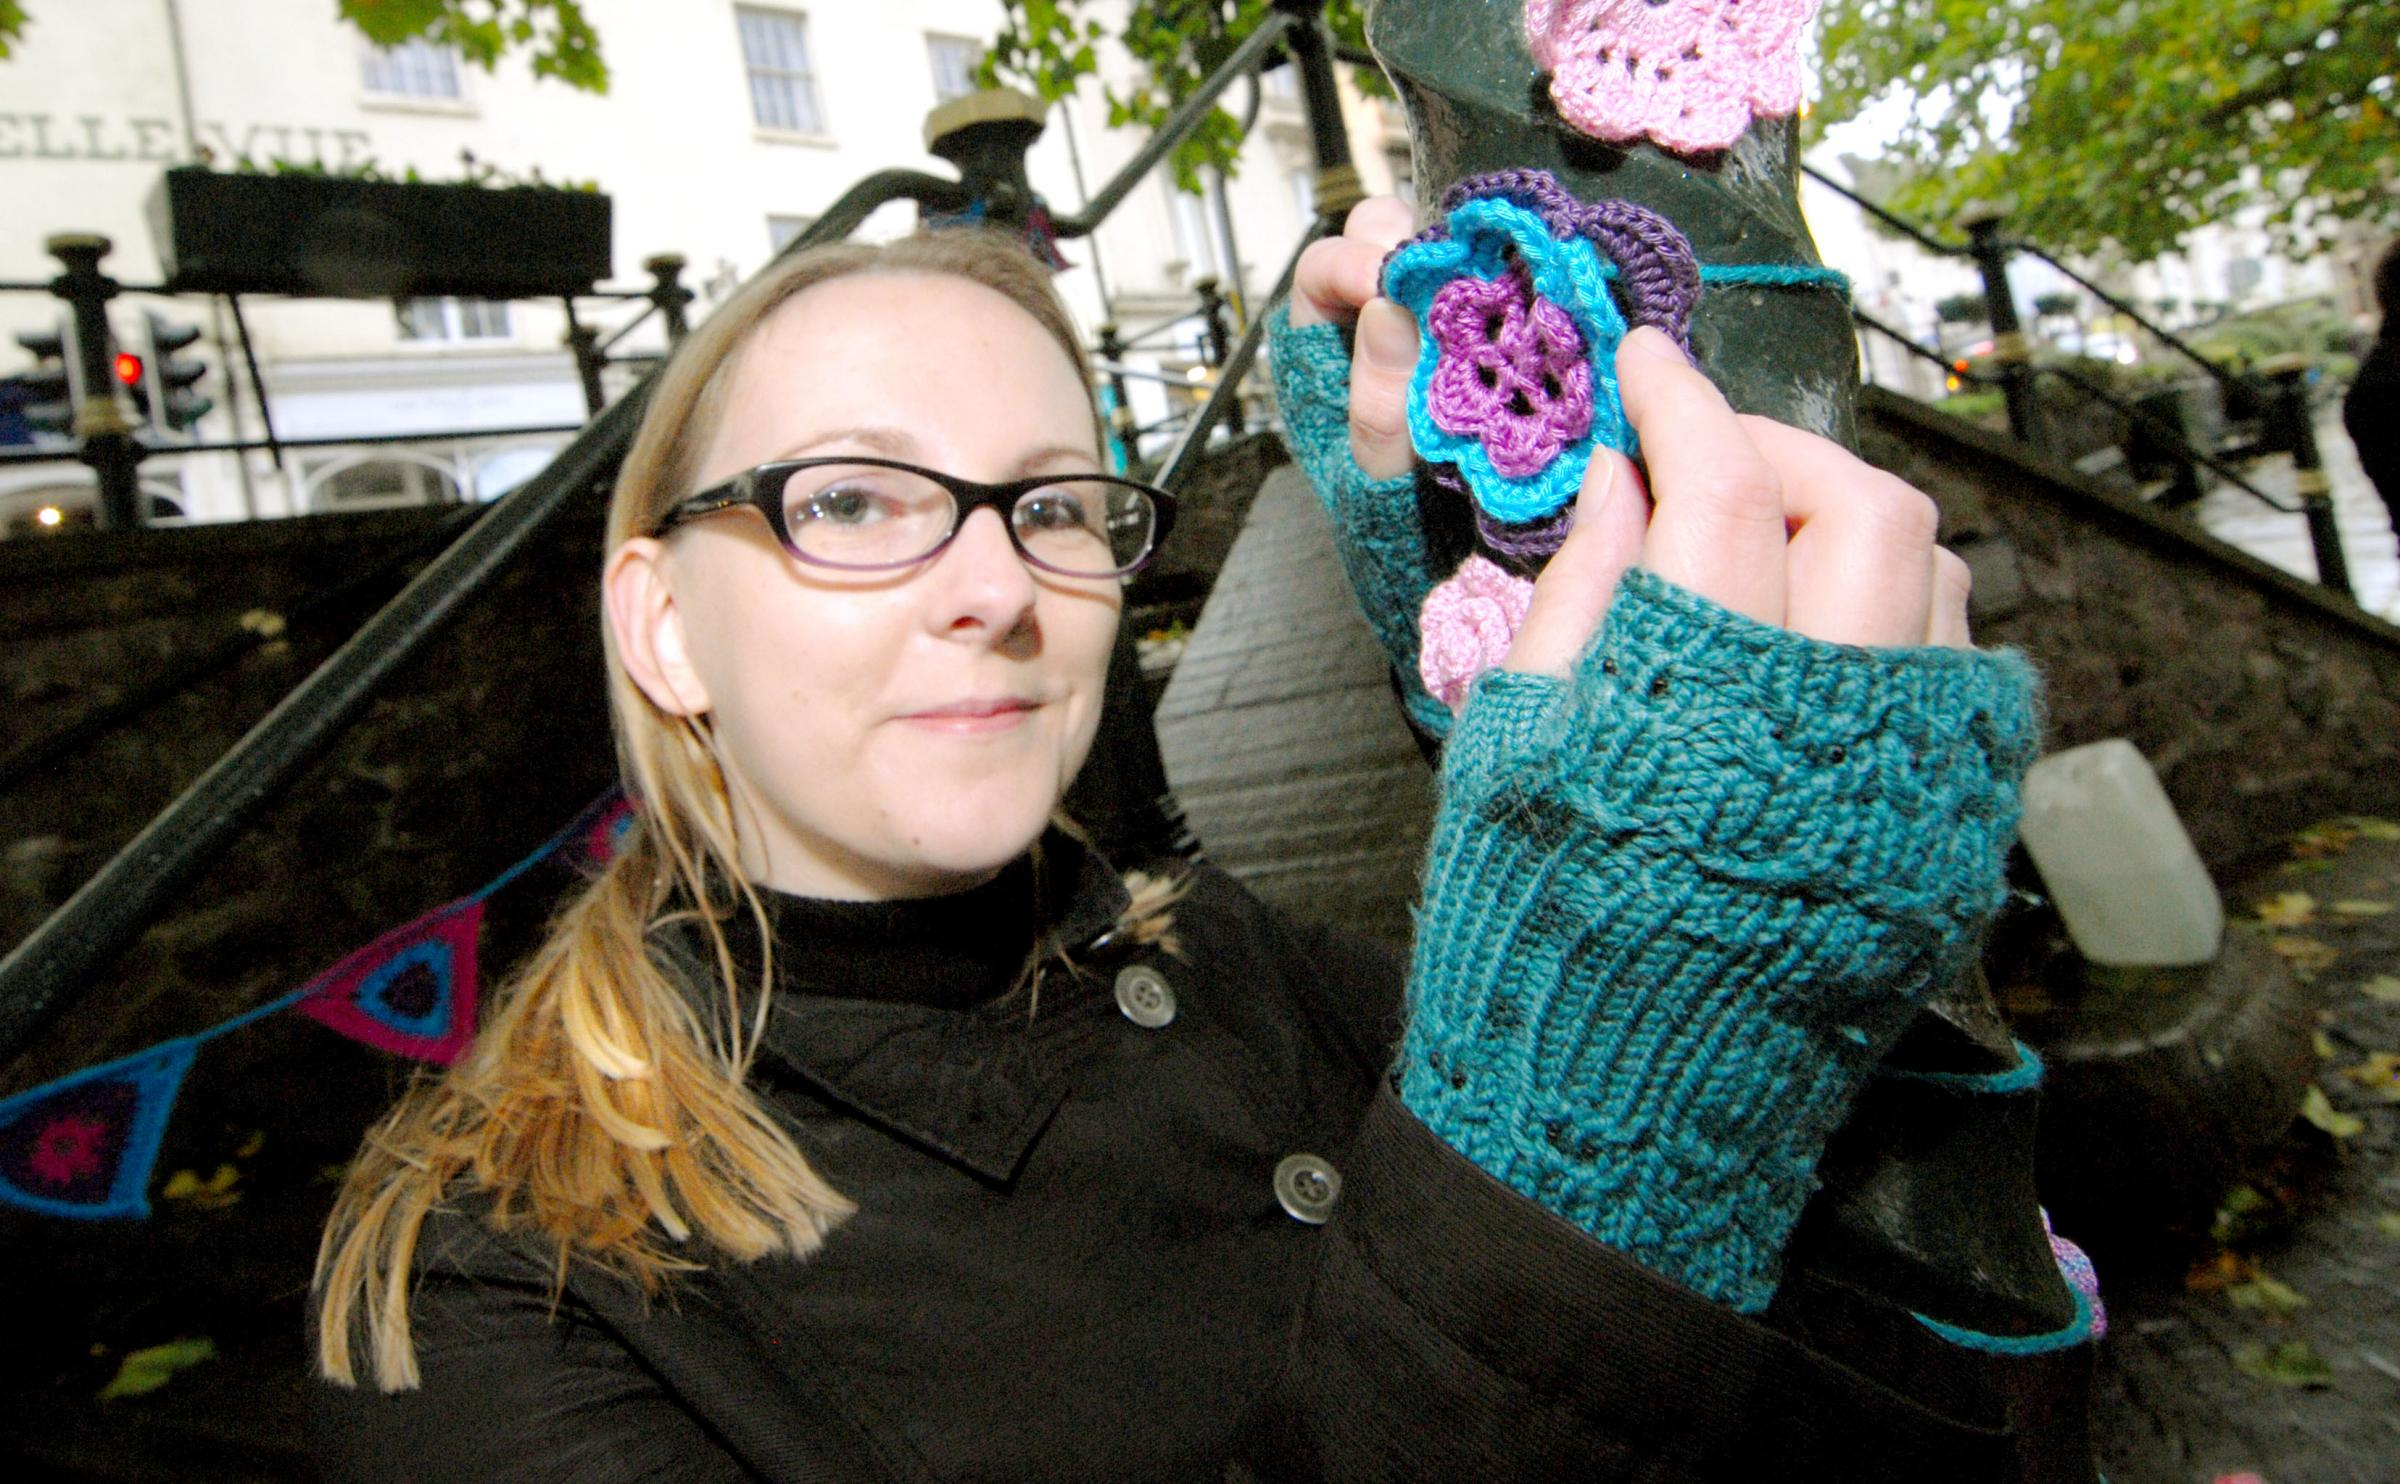 Joanne Davies-Mourby of Yarnbomb Great Malvern with one of her projects earlier this year.